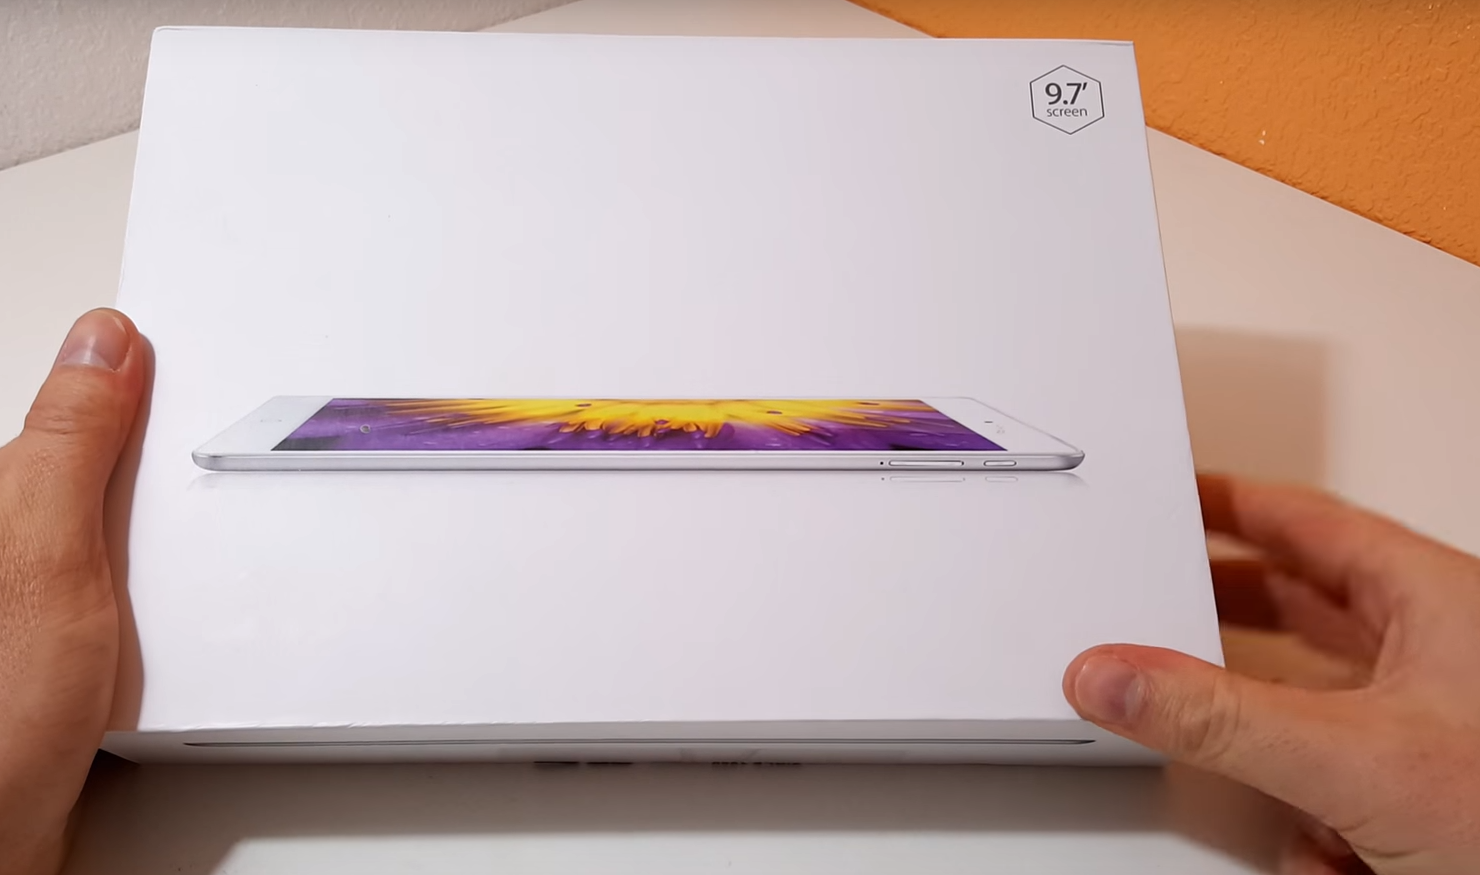 Onda V919 Air tablet unboxing. Box held in hands.